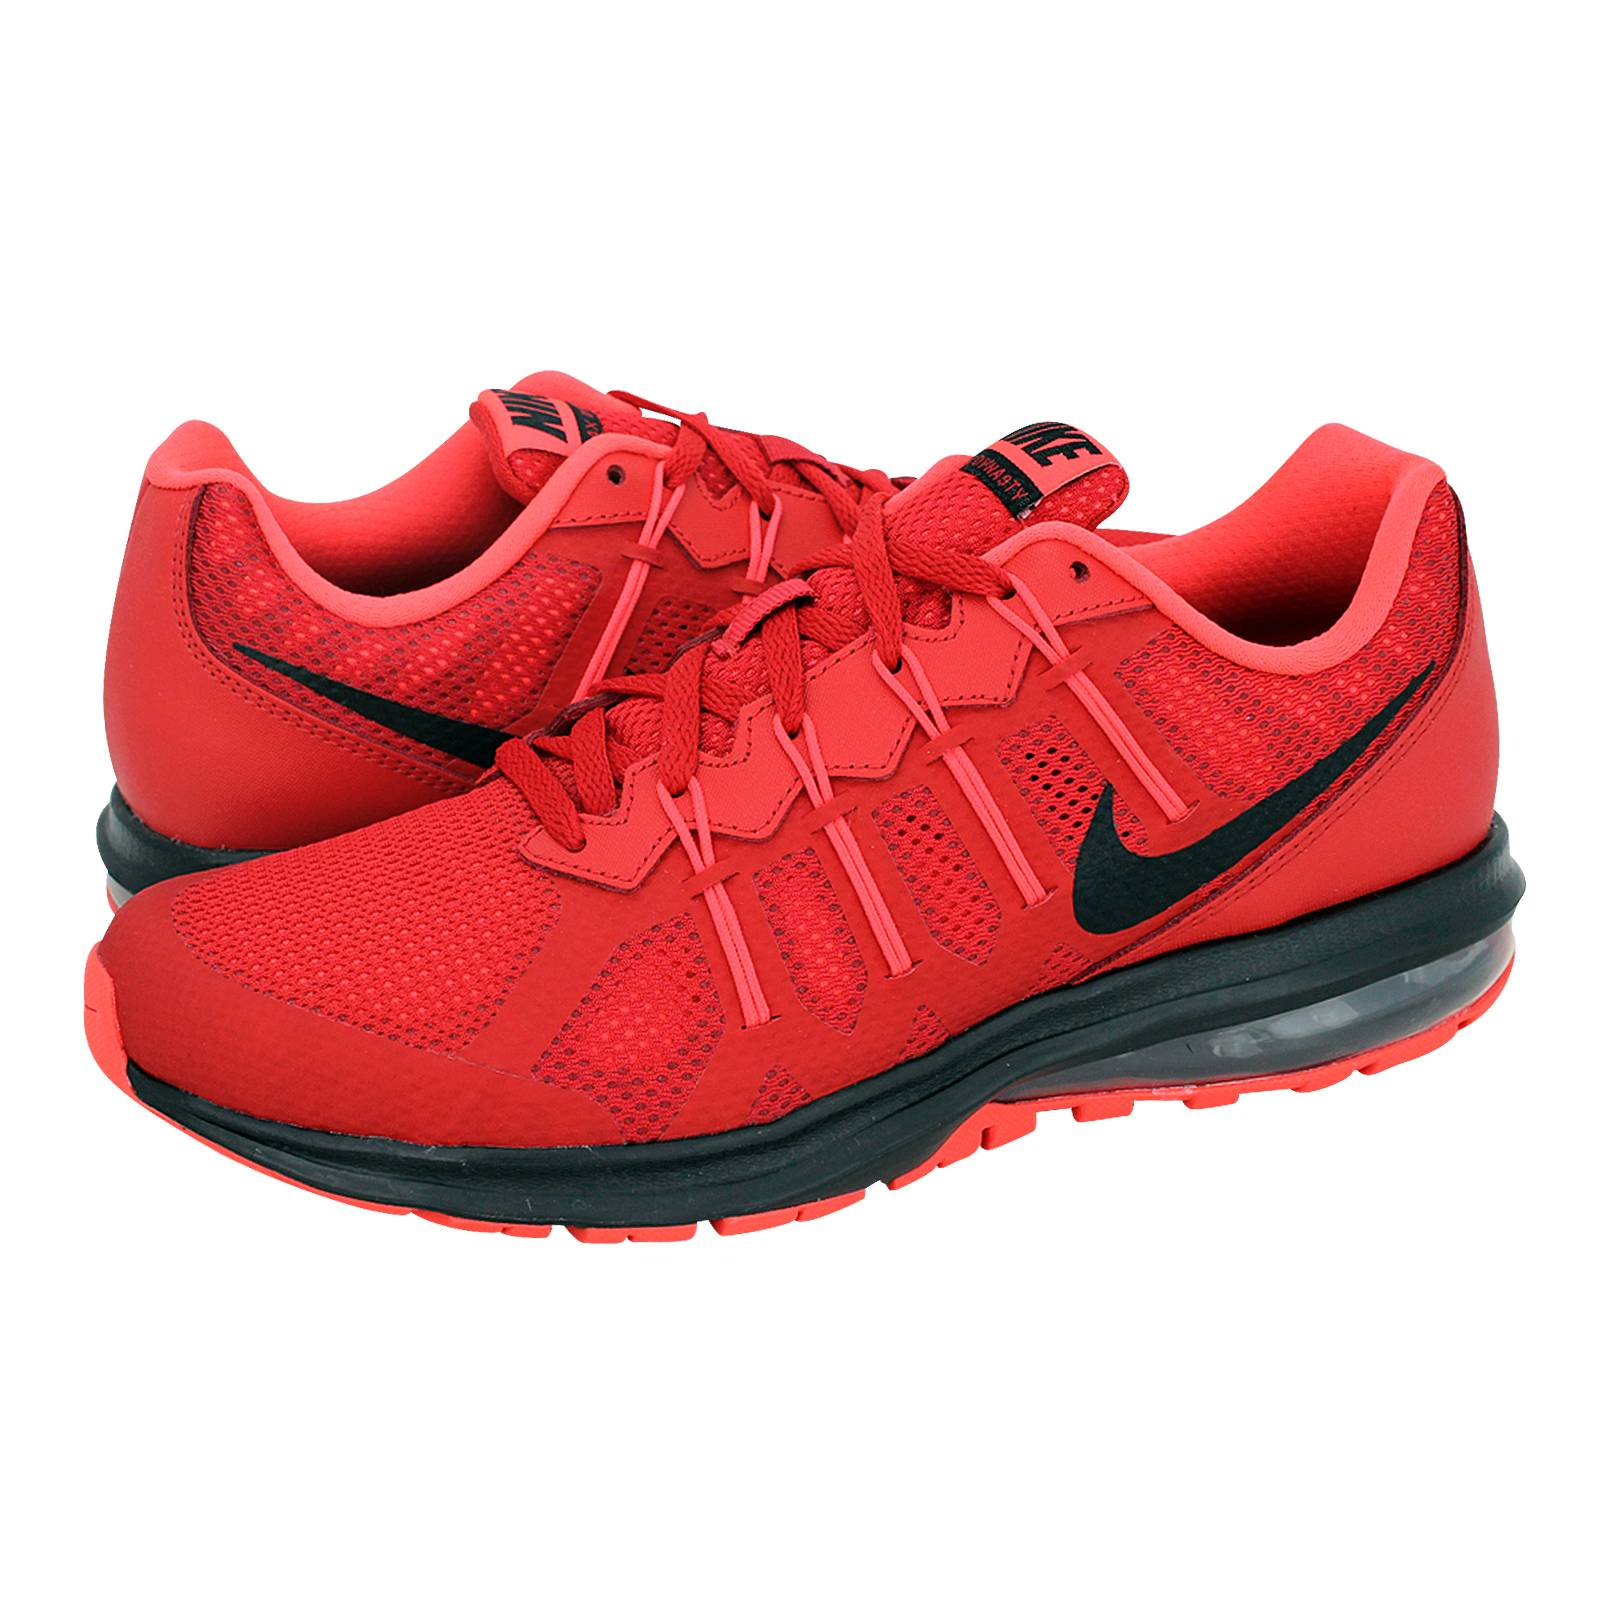 marioneta transportar Premonición  Air Max Dynasty - Nike Men's athletic shoes made of leather, fabric and  synthetic - Gianna Kazakou Online